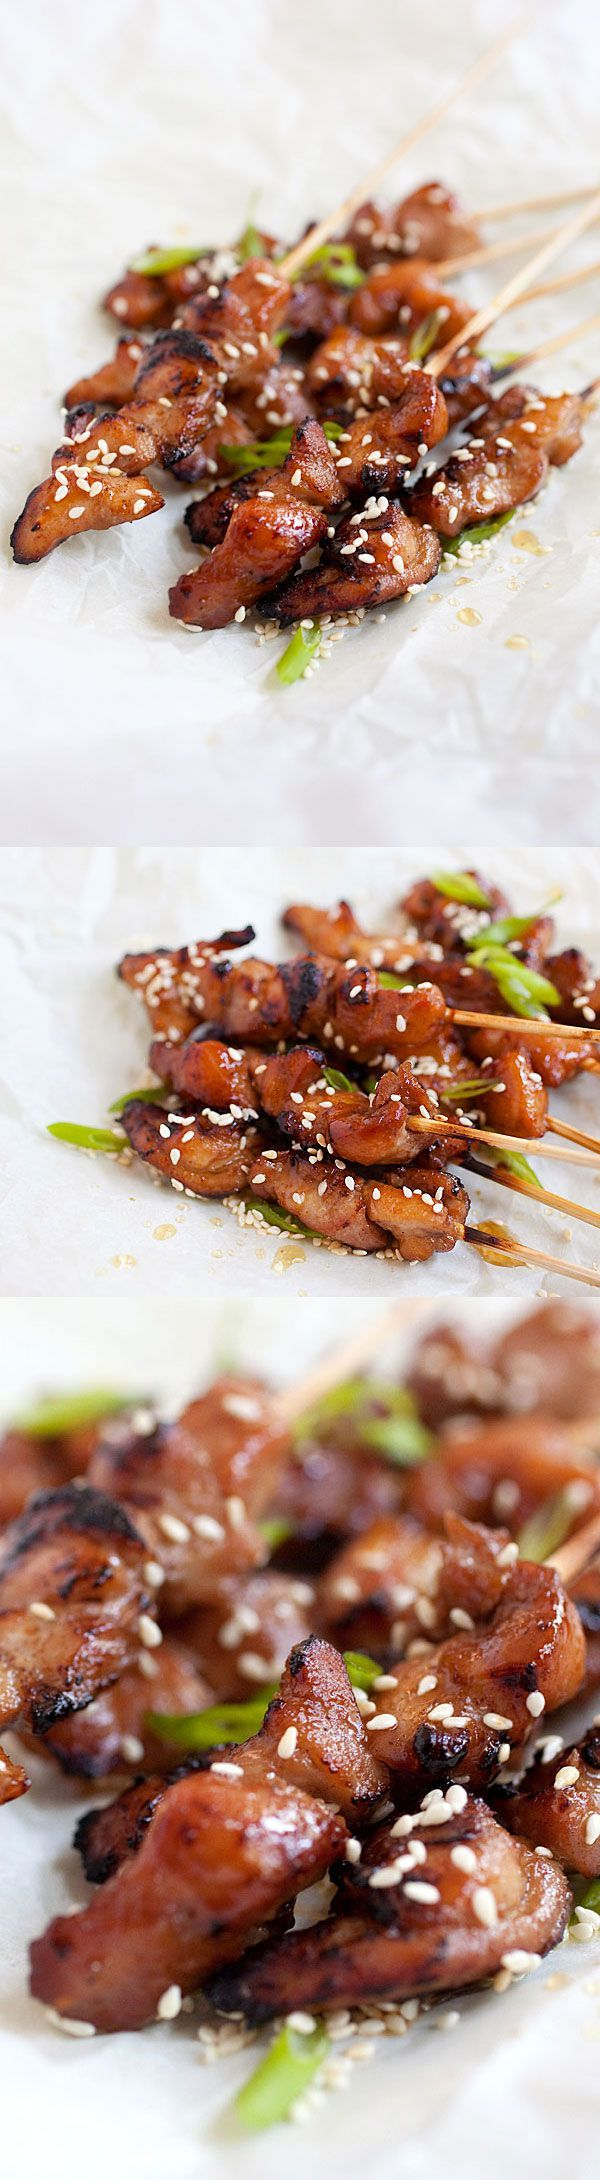 Honey Sesame Chicken Skewers – sticky sweet and savory chicken on skewers. So easy to make, so delicious that you won't stop eating | rasamalaysia.com